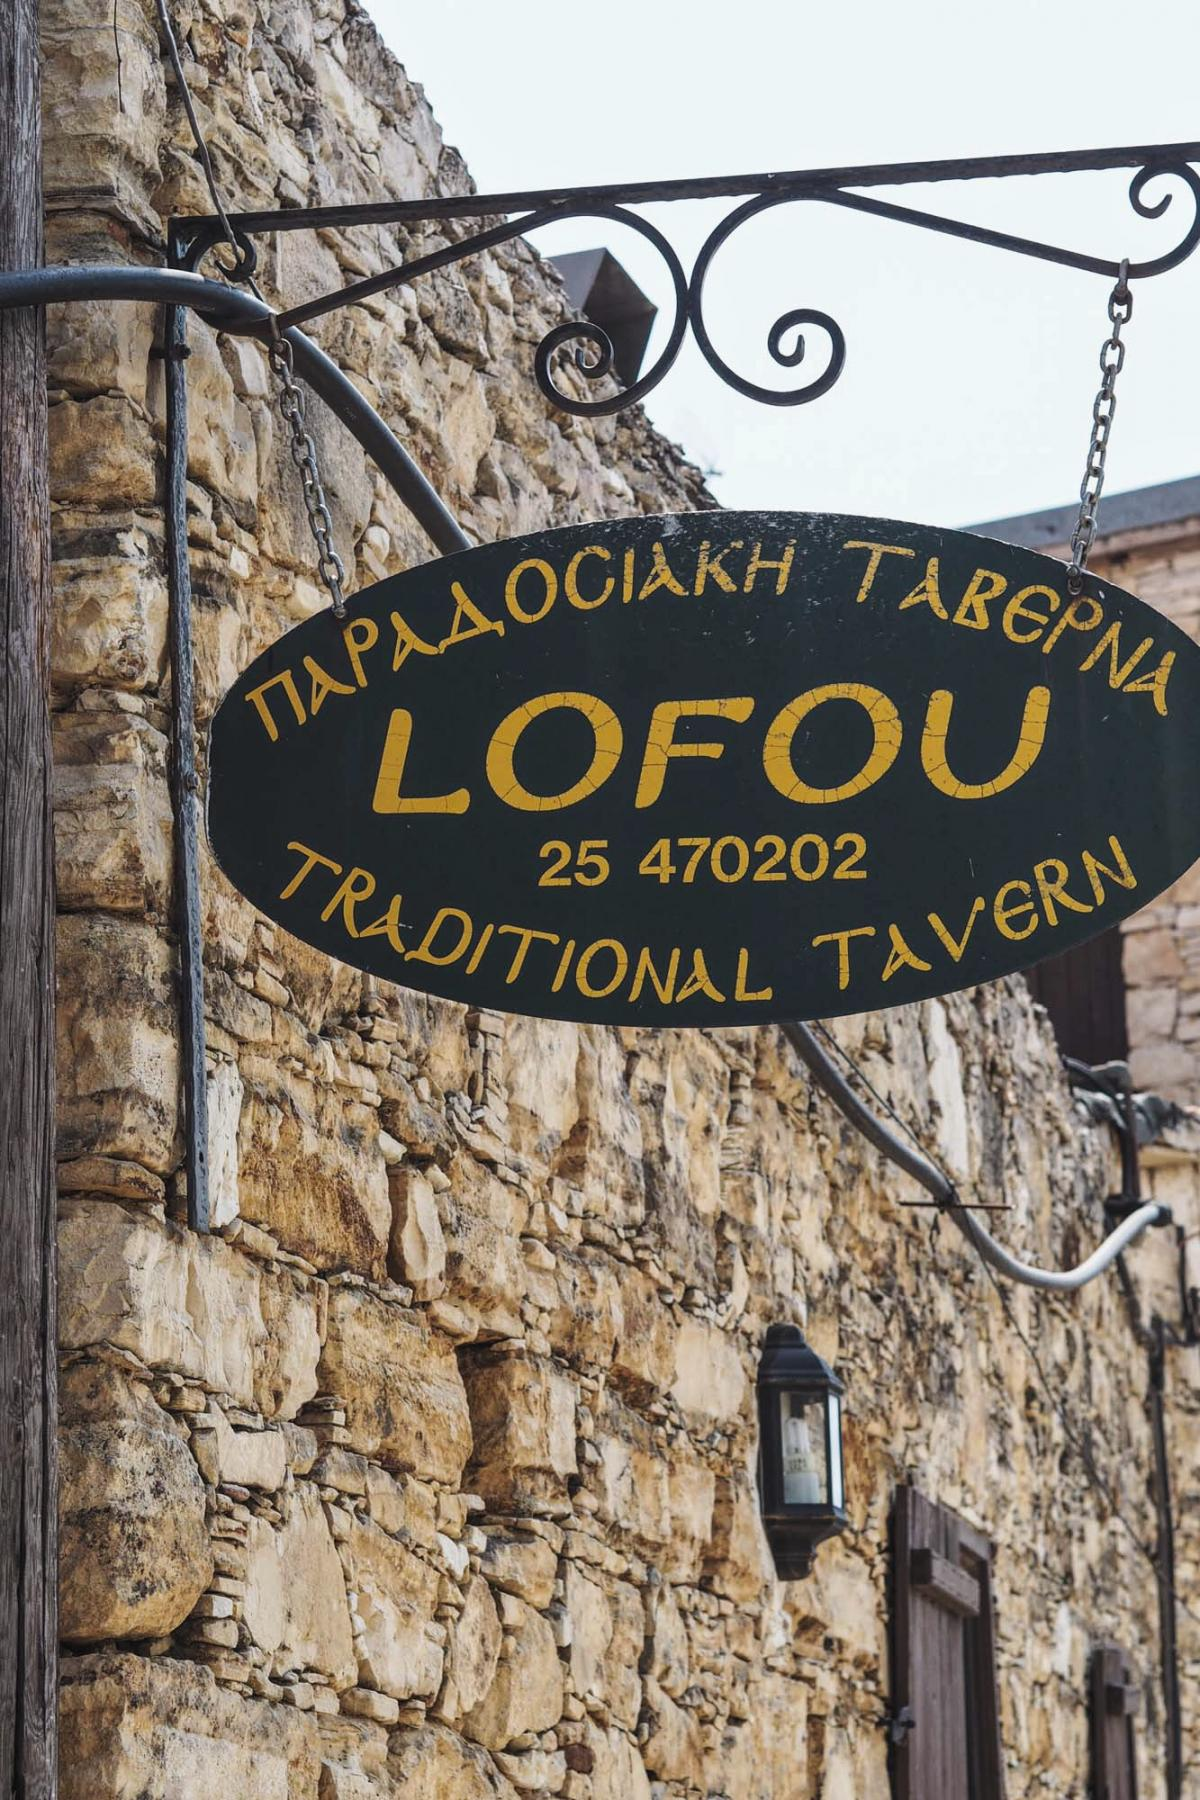 travel, Loufou cyprus, the best traditional tavern to eat at